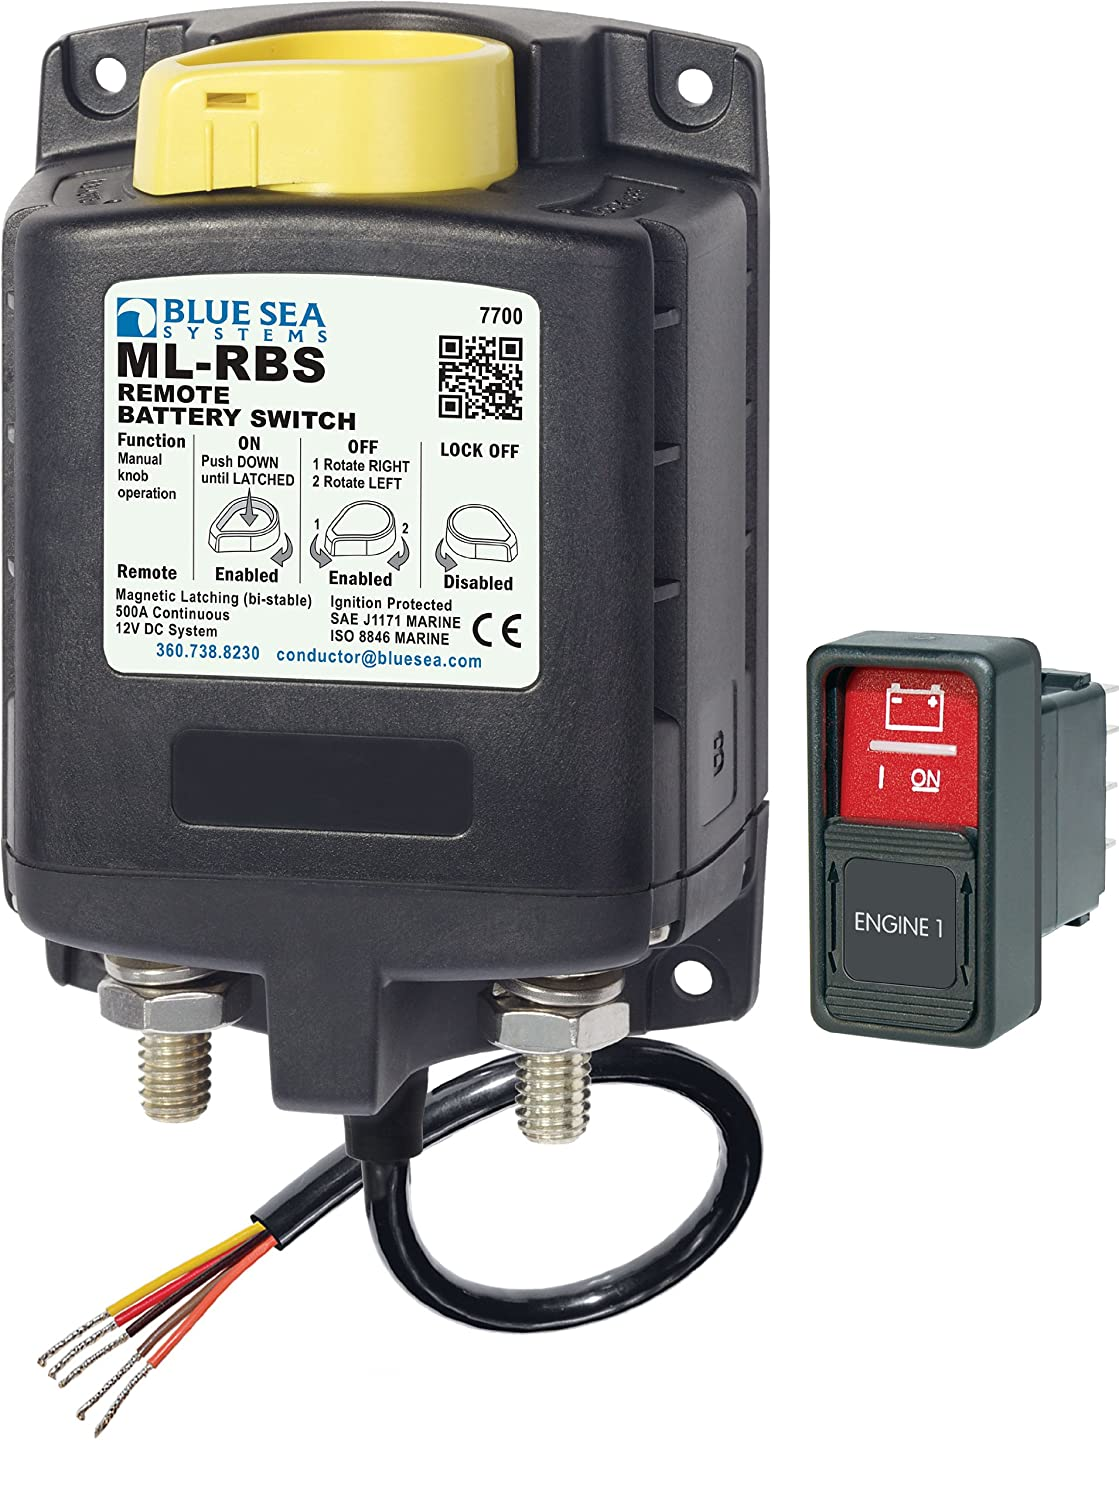 Blue Sea Systems 7700, Ml-Rbs Remote Battery Switch with Manual Control-12V DC 500A Seawide Marine